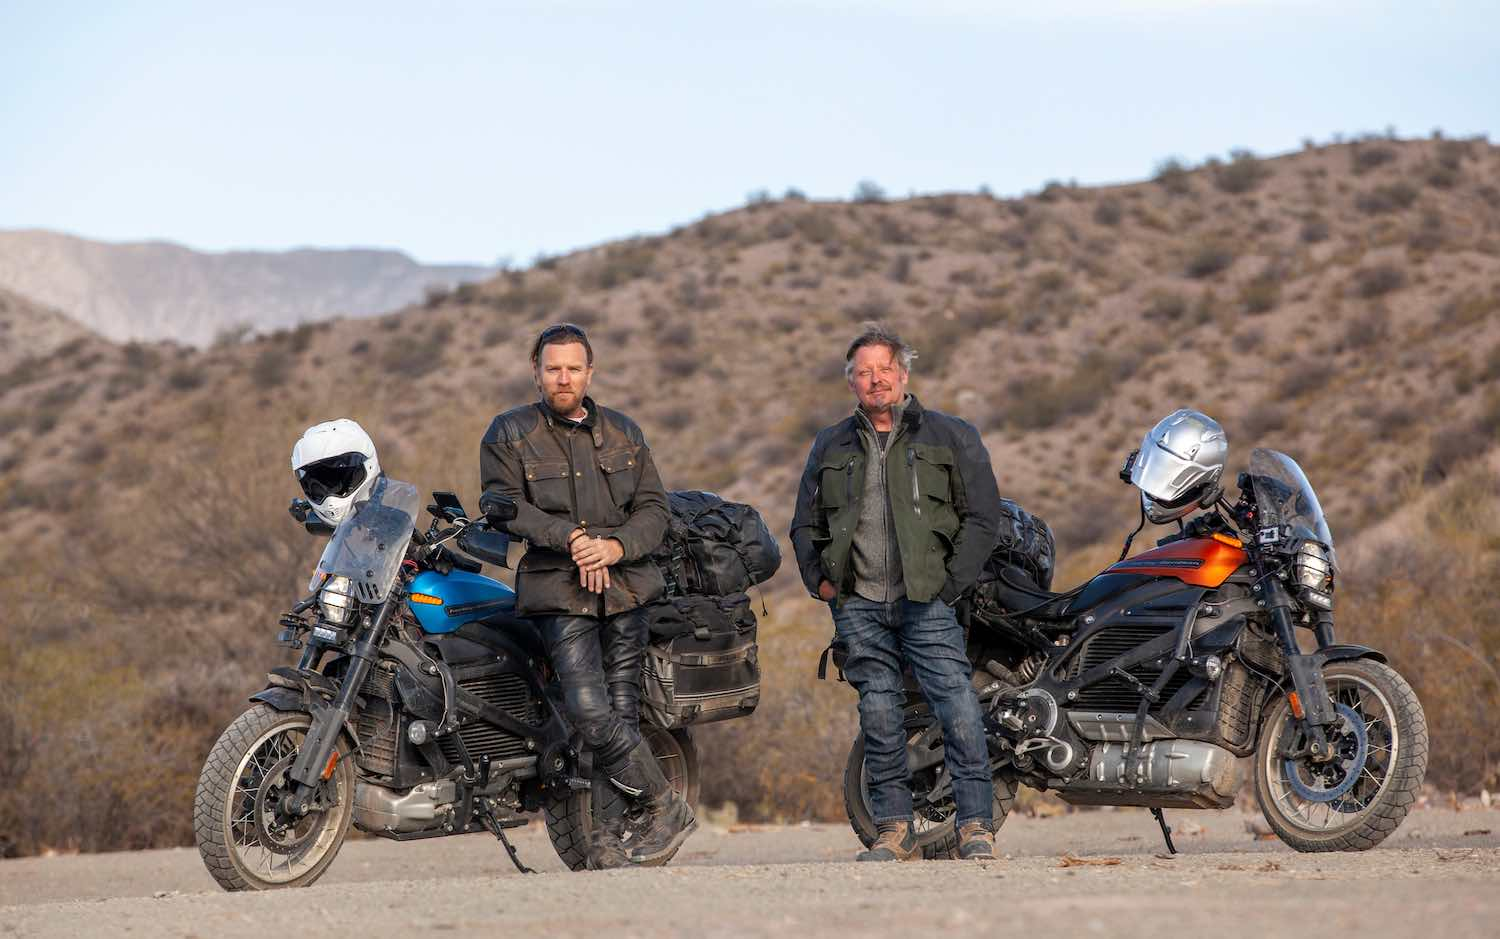 'Long way up': la aventura de Ewan McGregor y Charley Boorman llega a Apple TV+